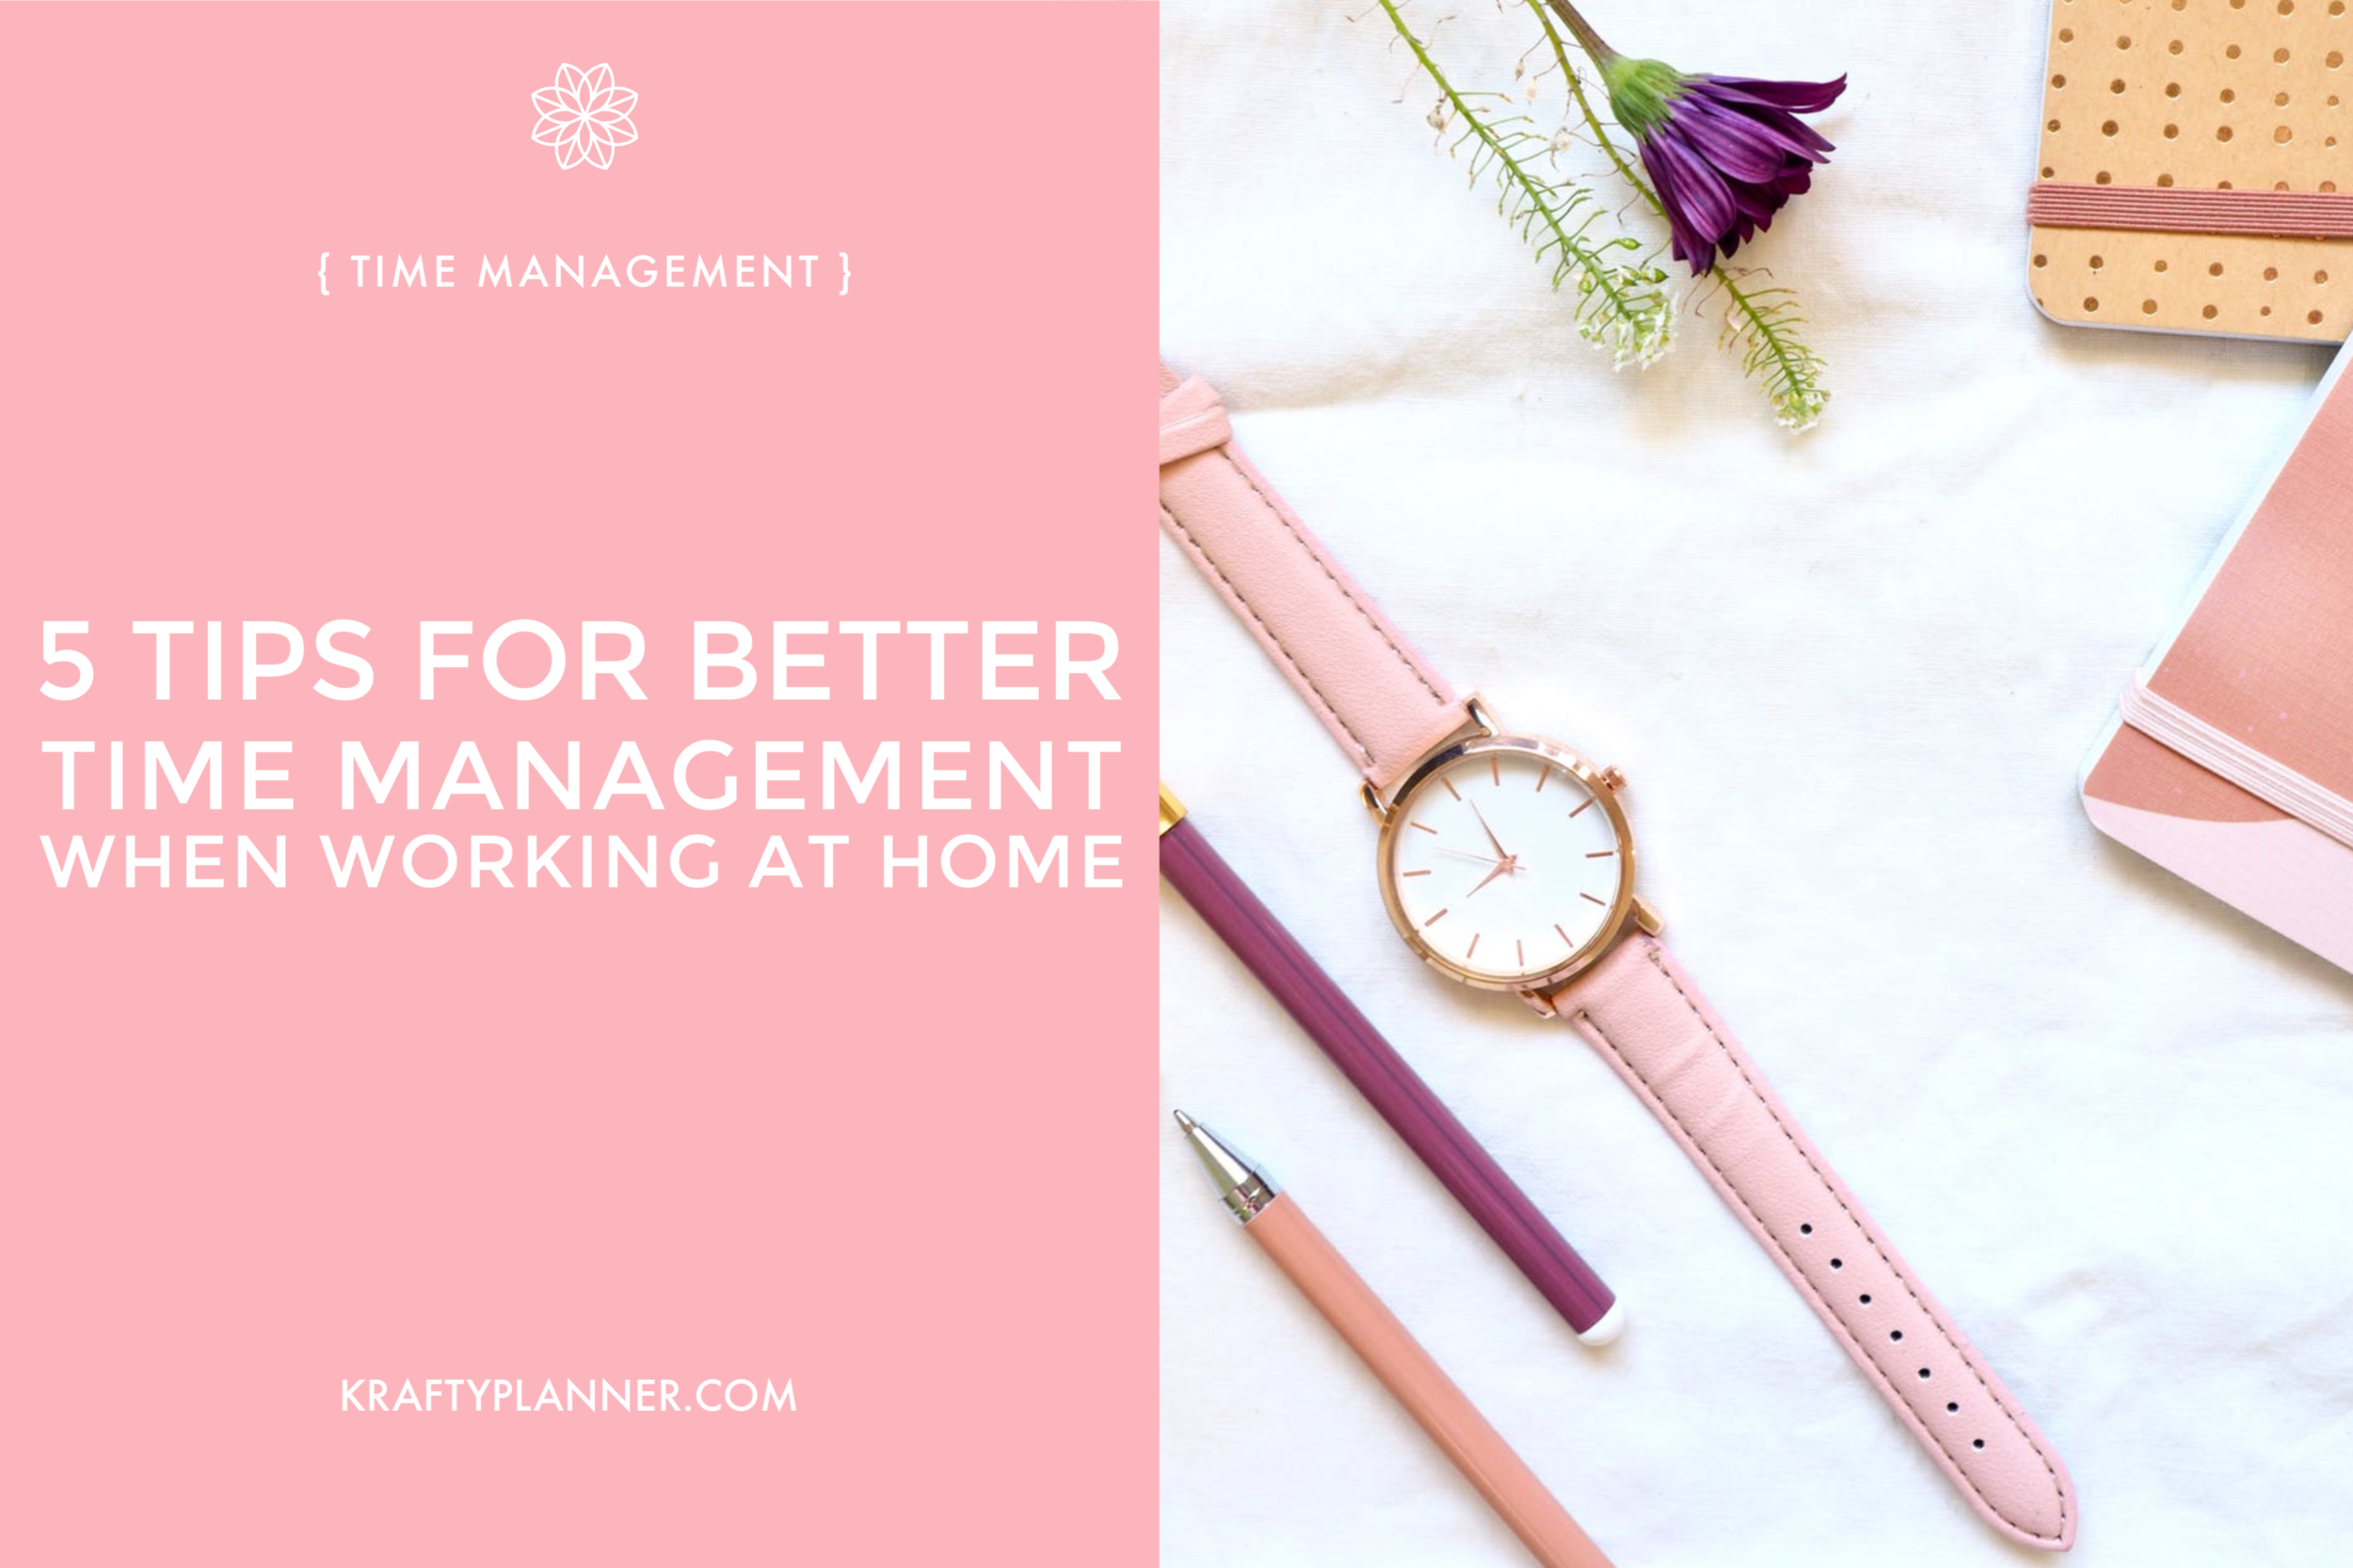 5 Tips for Better Time Management When Working at Home Main Image.png